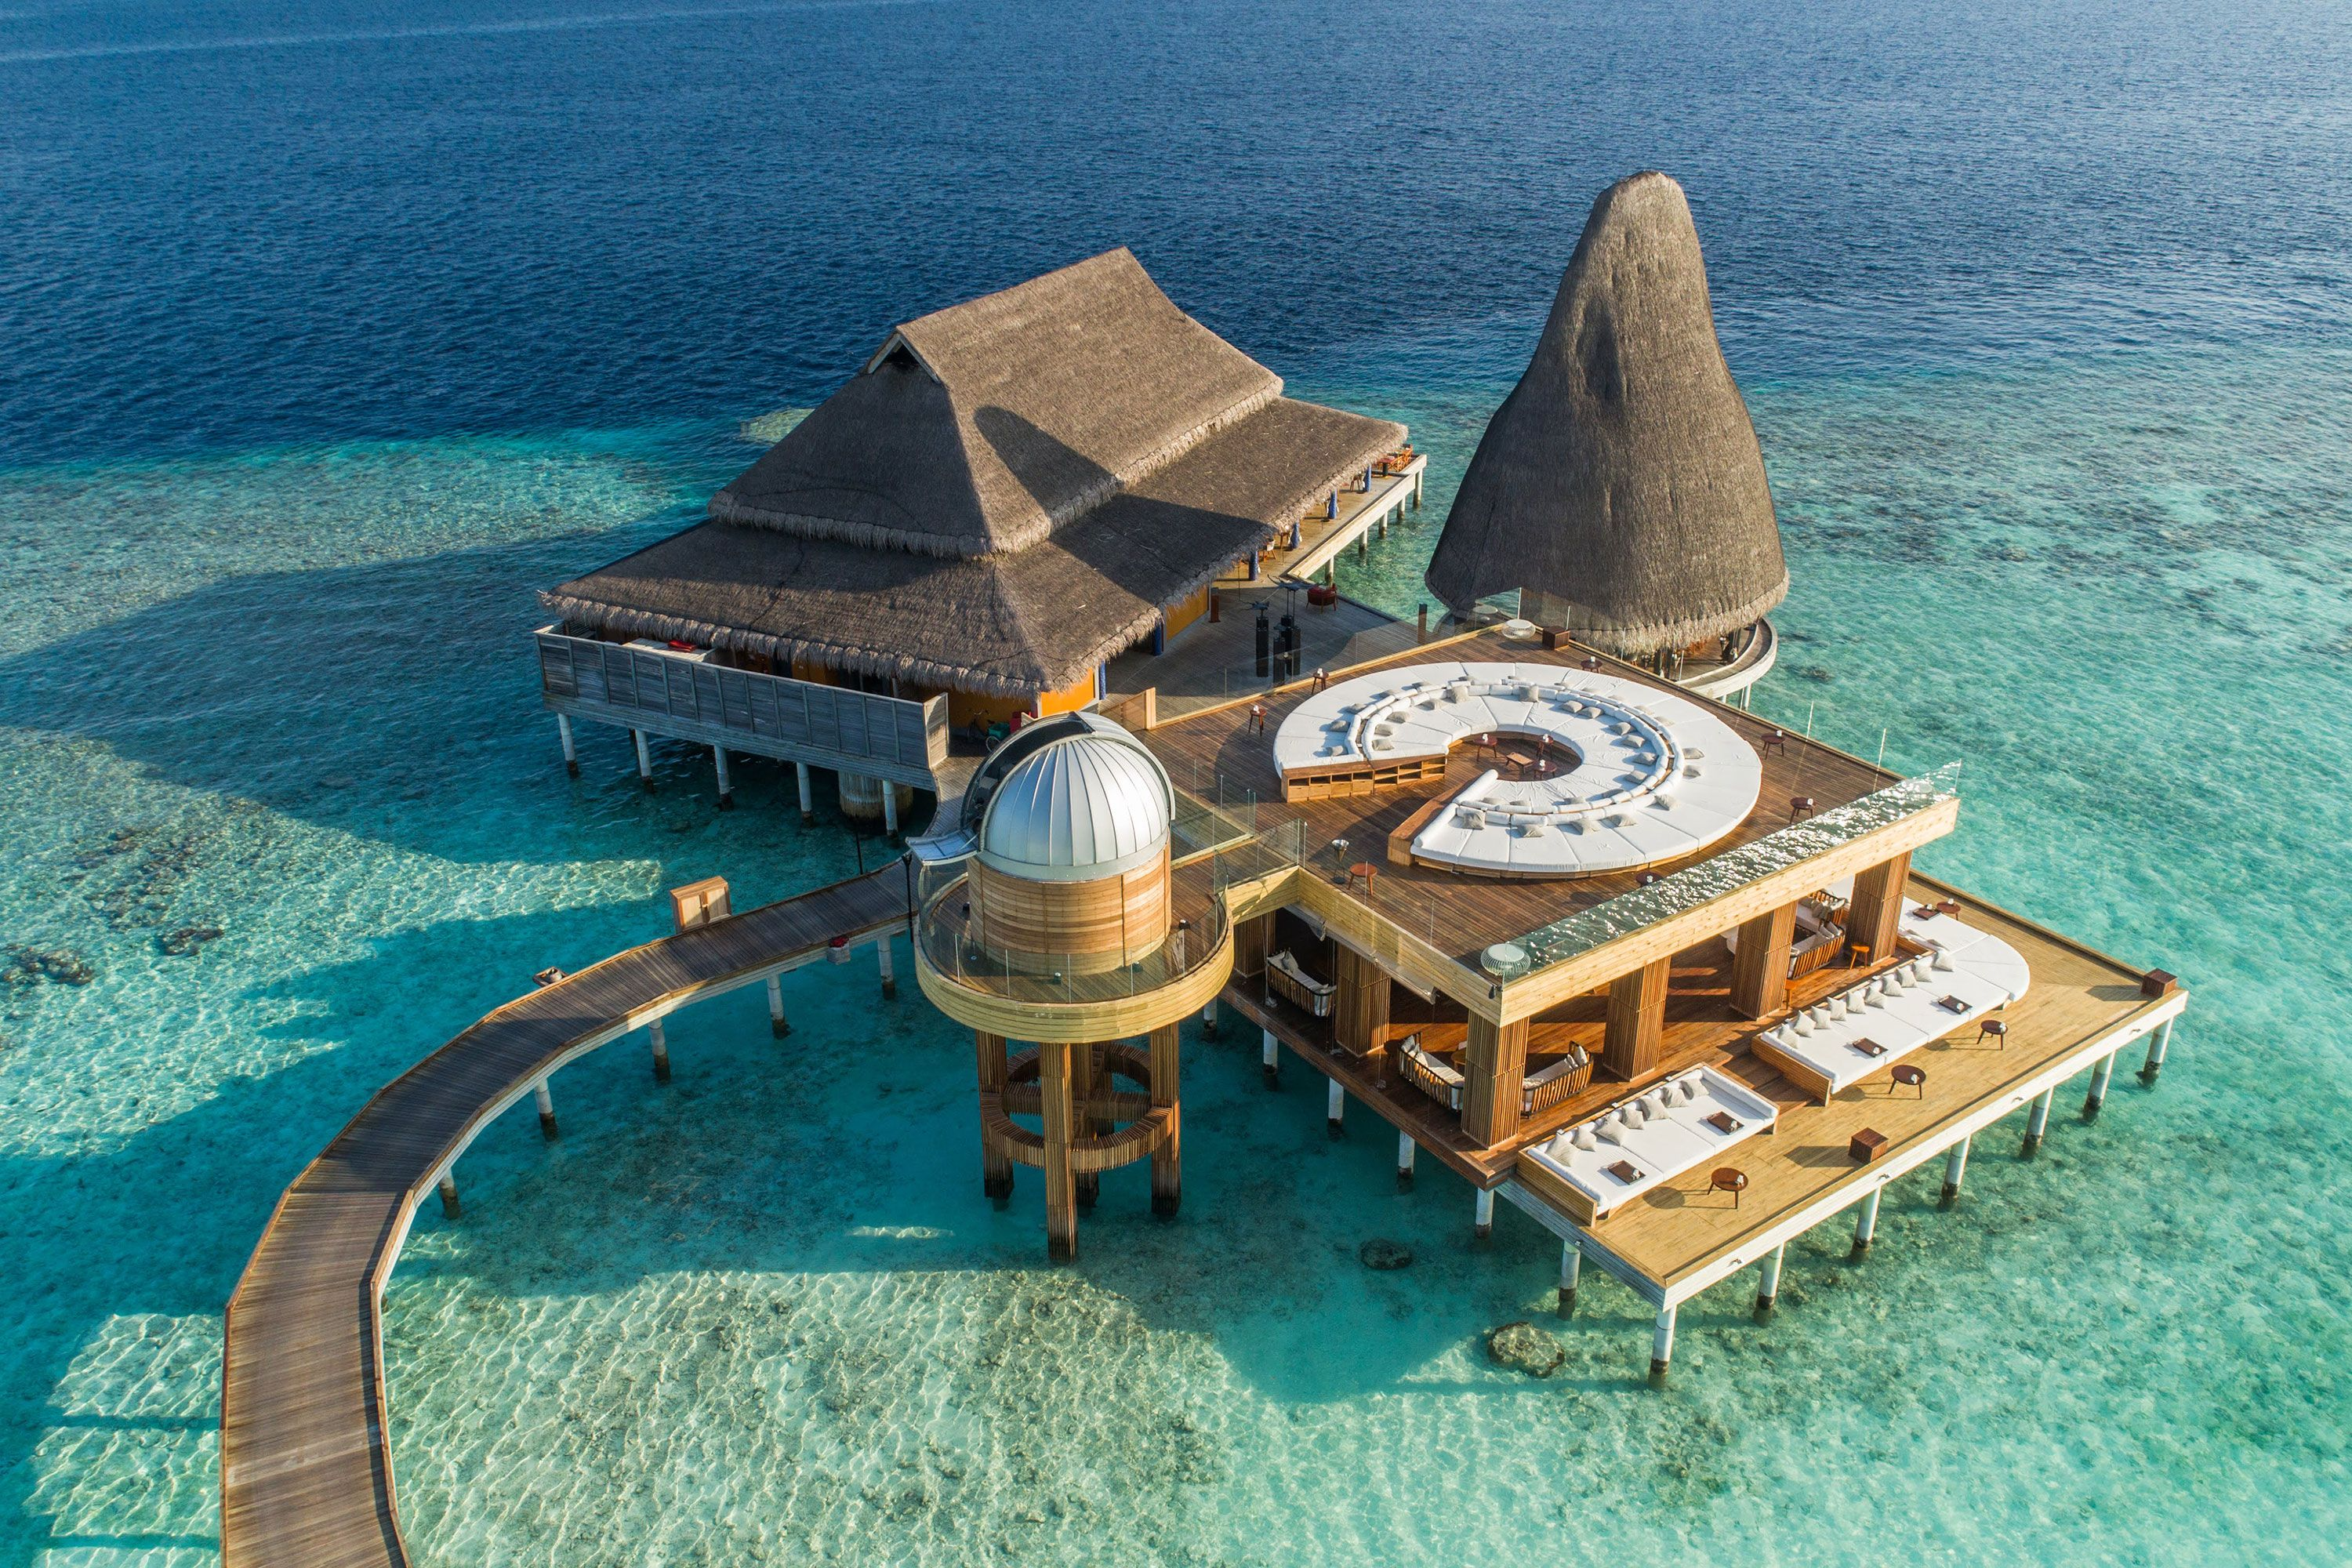 Anantara Kihavah is crowned the most Instagrammable hotel in the world